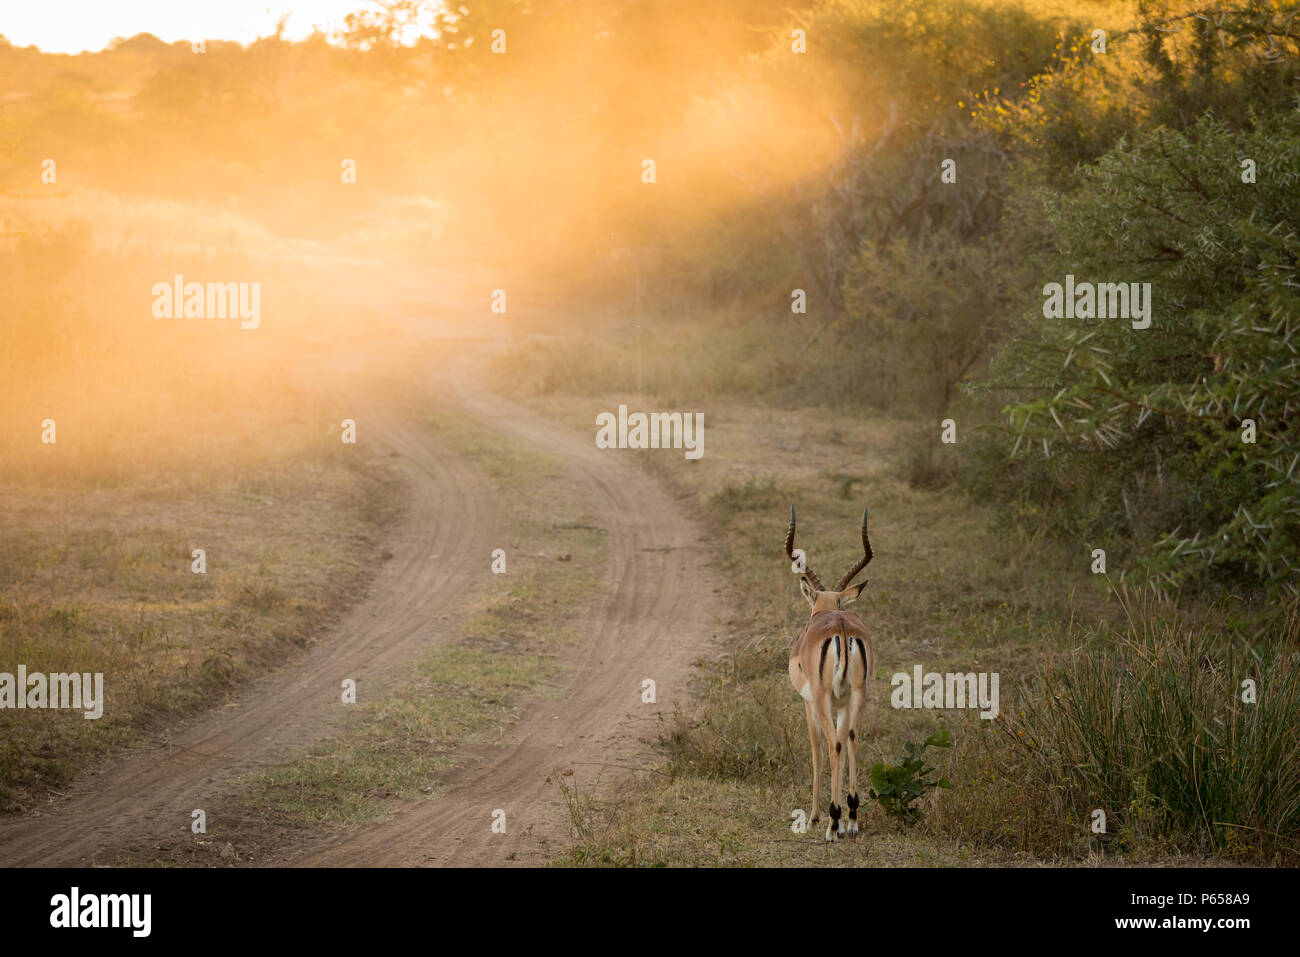 Impala with golden light at dawn on safari - Stock Image